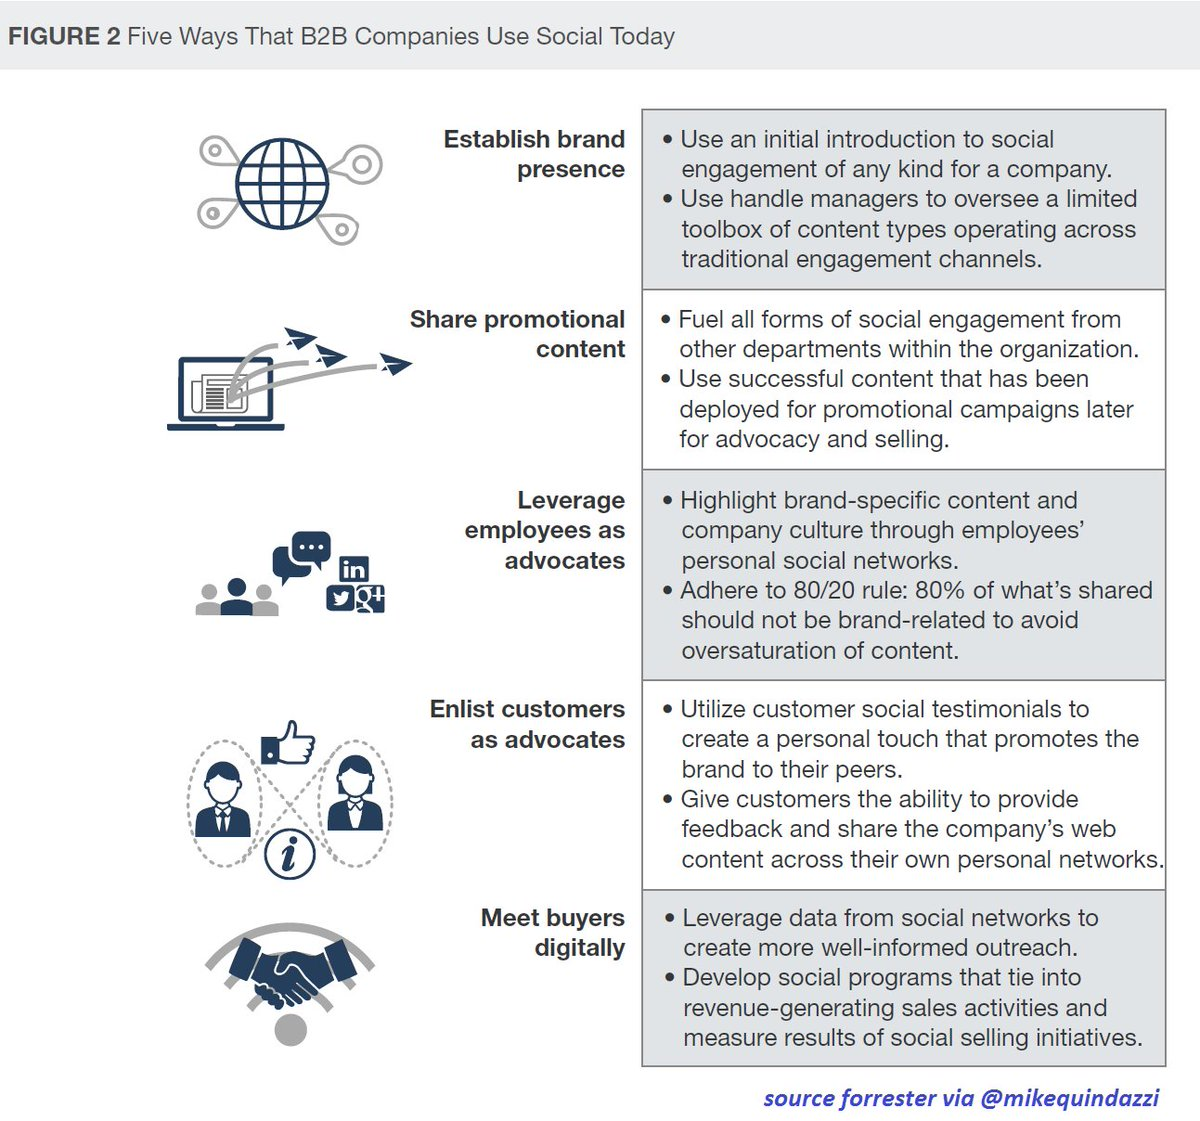 5 ways #B2B companies are leveraging #socialmedia (sellers embracing #socialselling are 72% more likely to exceed quotas) @forrester<br>http://pic.twitter.com/THJBlXd1hO